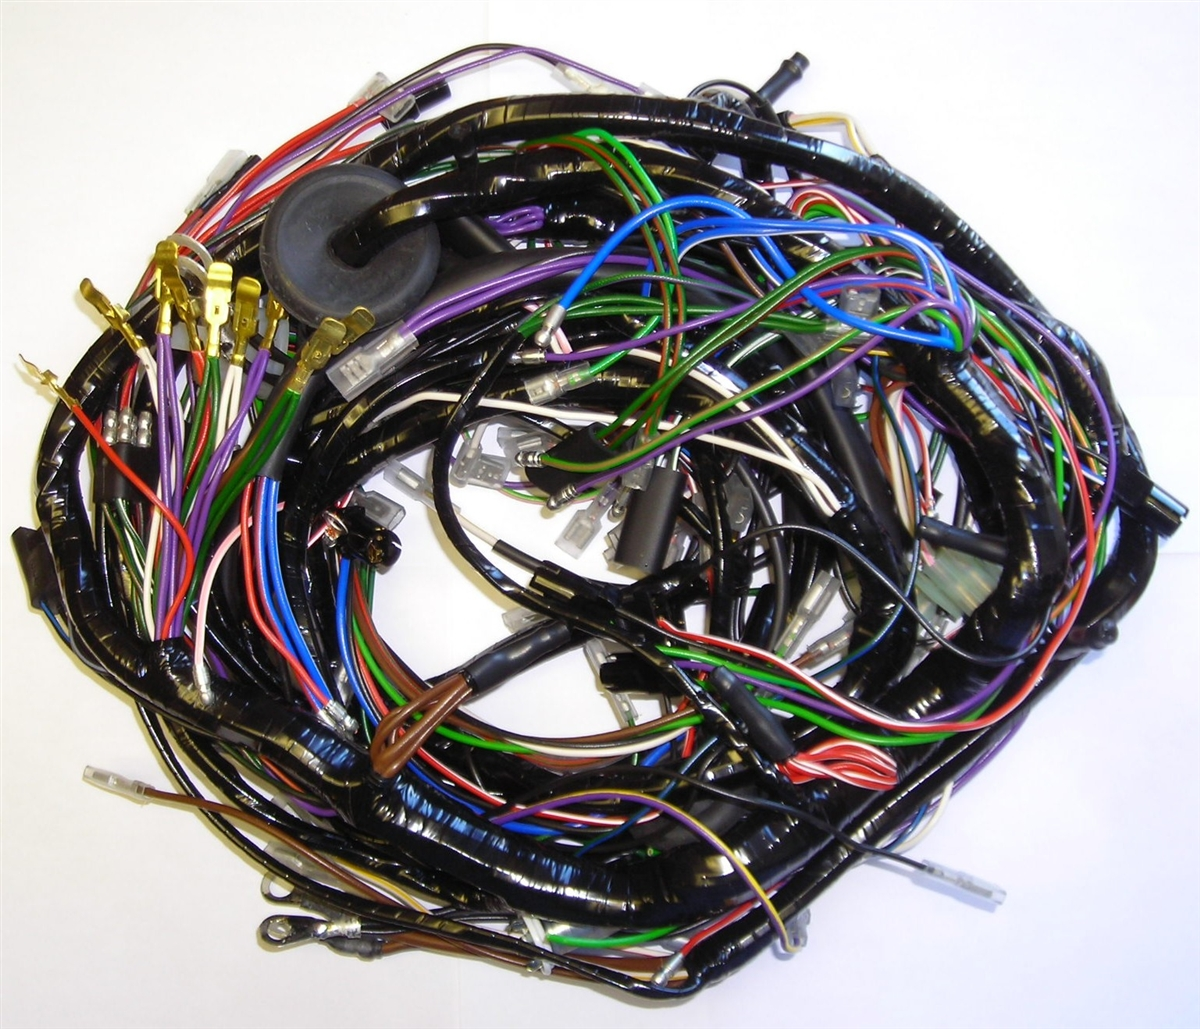 1523 2?1354101756 spitfire 1500 main wiring harness 73 triumph spitfire 1500 wiring harness at n-0.co